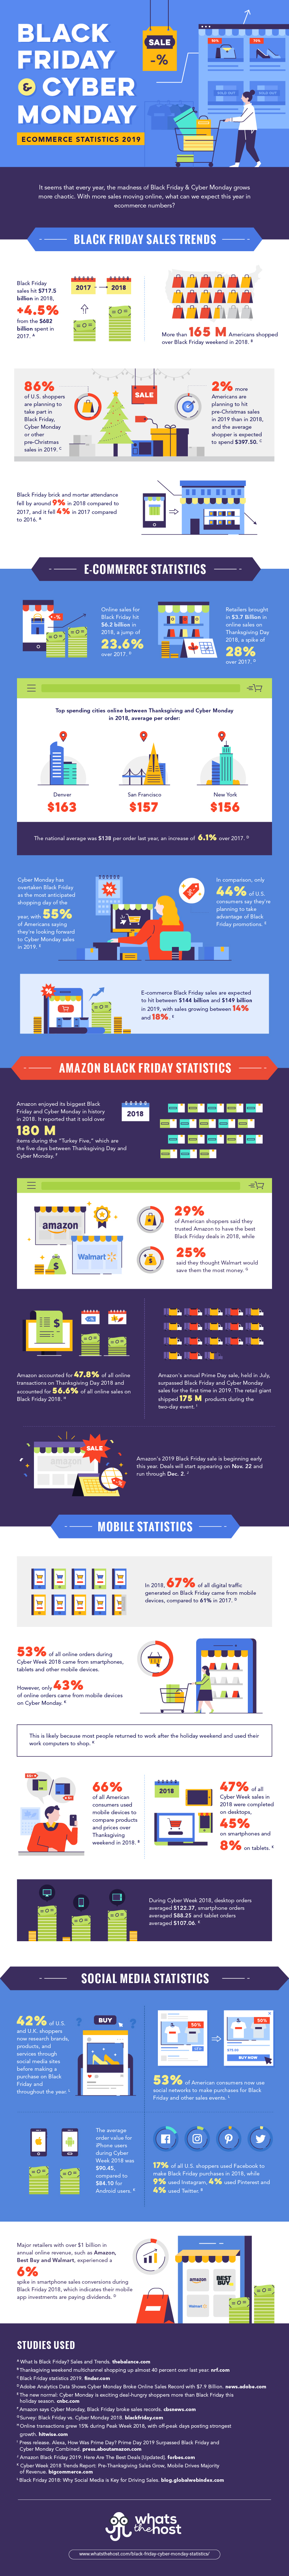 Must-Know Cyber Week Ecommerce Statistics for 2019 [Infographic]